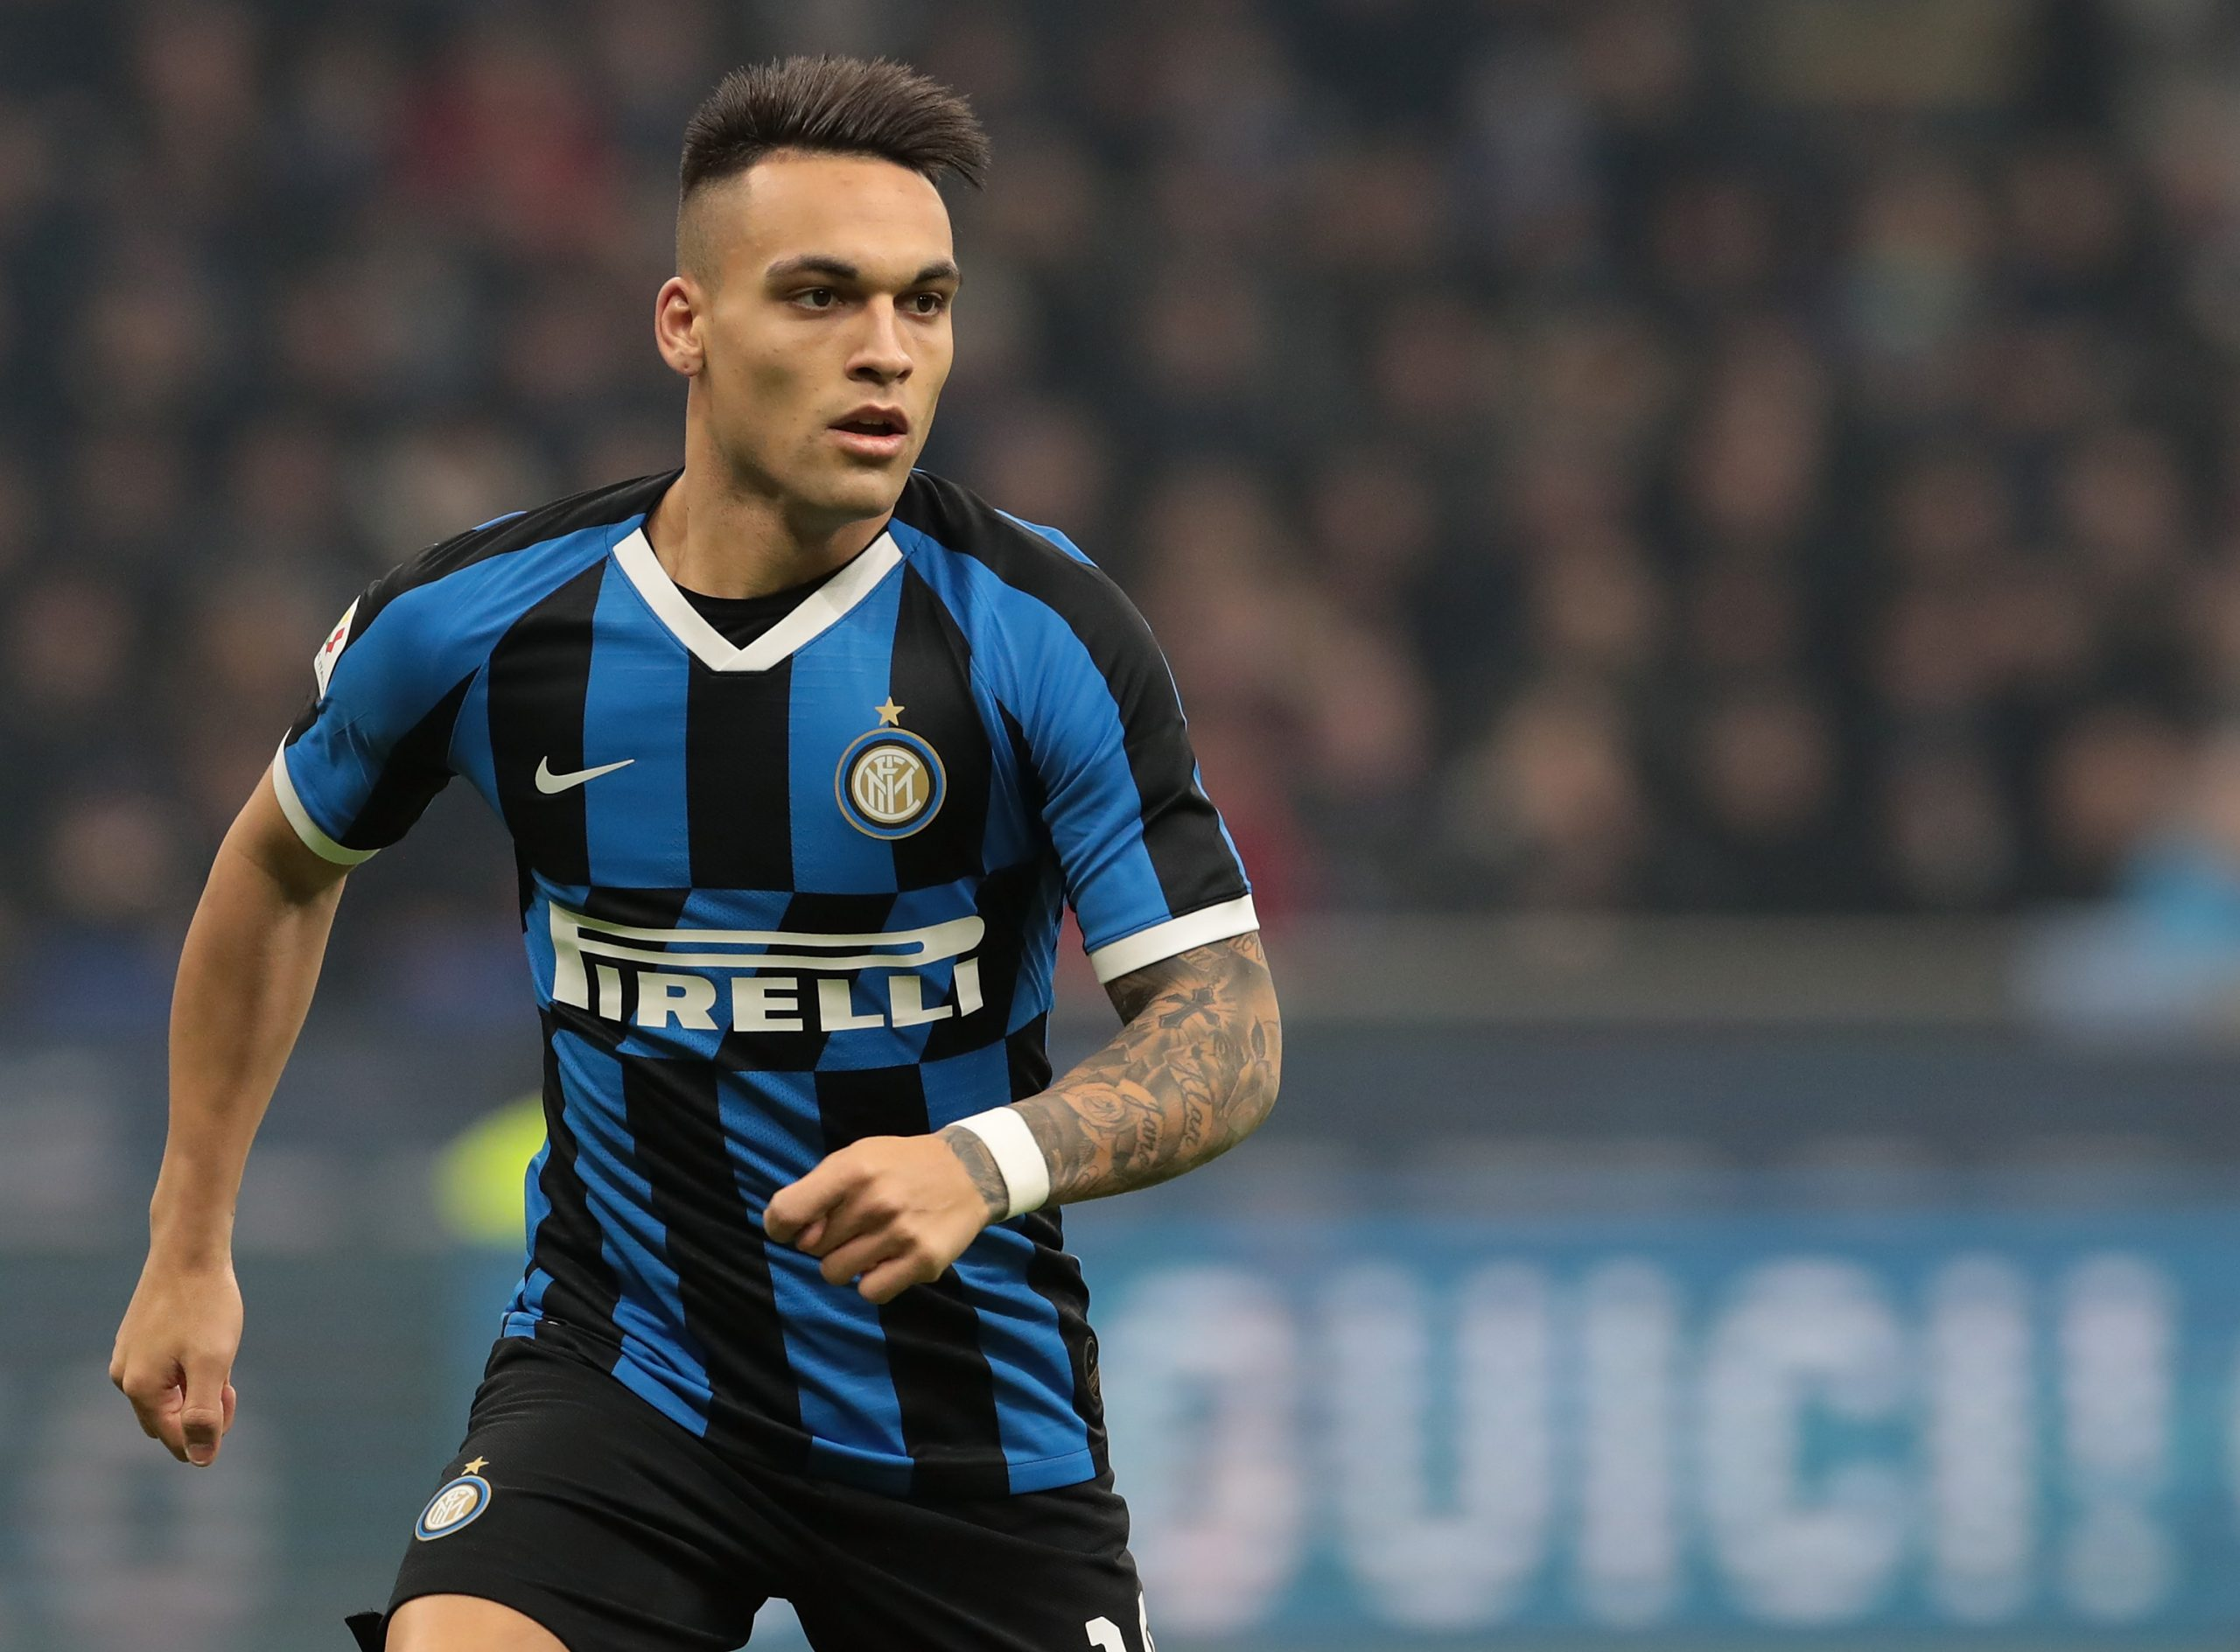 Lautaro Martinez has impressed at Inter Milan